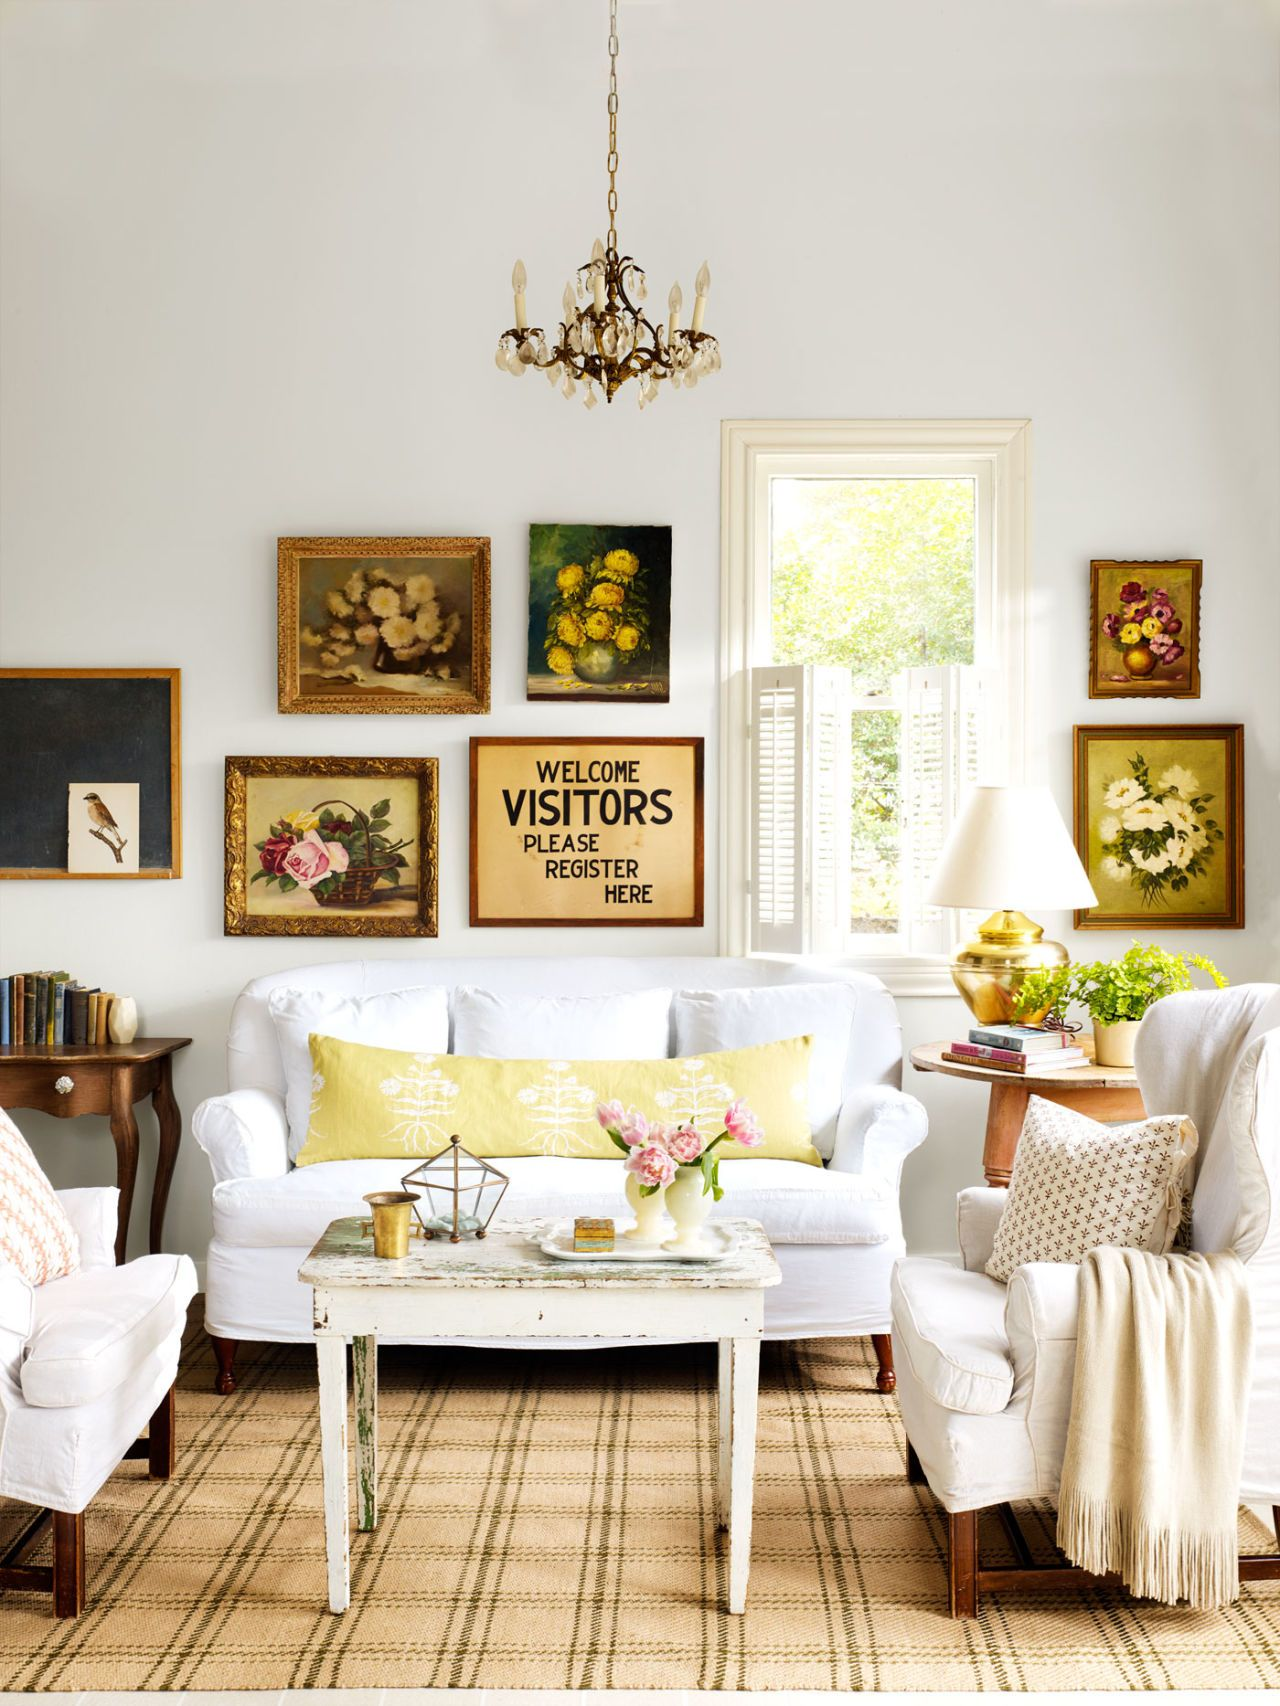 10 Ways to Create Down-Home Charm on a Dime | Gallery wall, Thrift ...